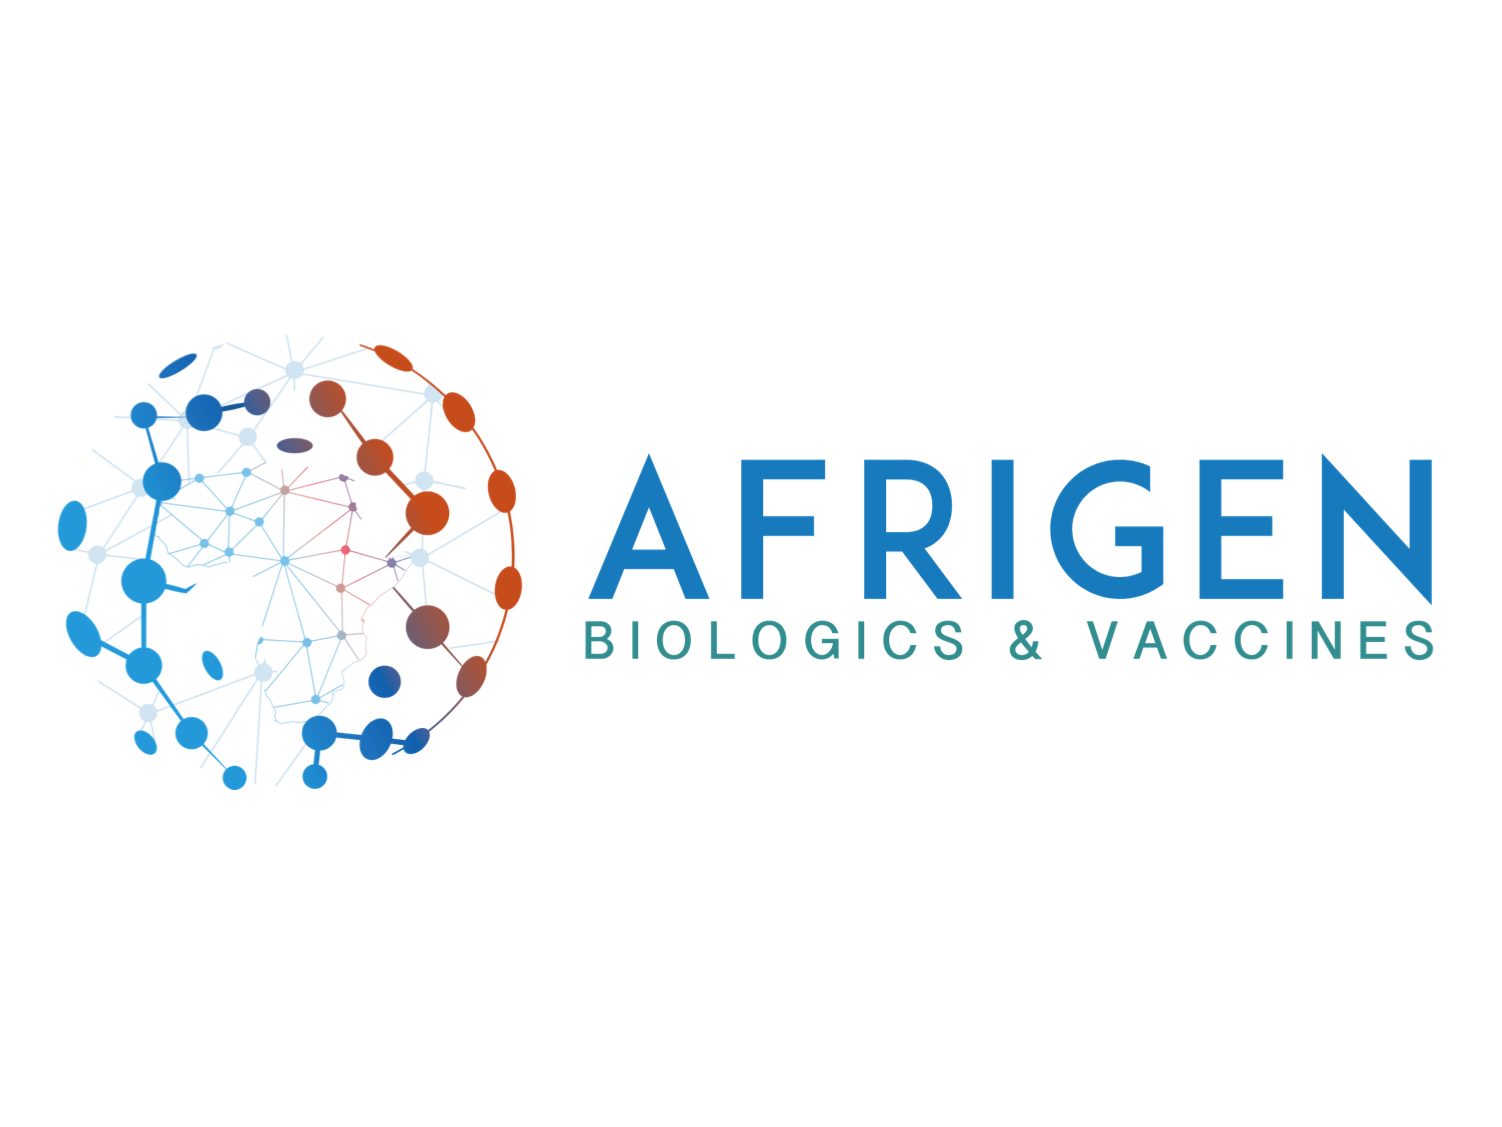 Afrigen is South Africa's first Biologics company. They develop healthcare solutions that bring access to life saving drugs to millions of people across Africa.  We developed the Brand Strategy, created a refreshed identity as well as a new website for one of Africa's most innovative pharmaceutical companies.   Click  here  to see our work.